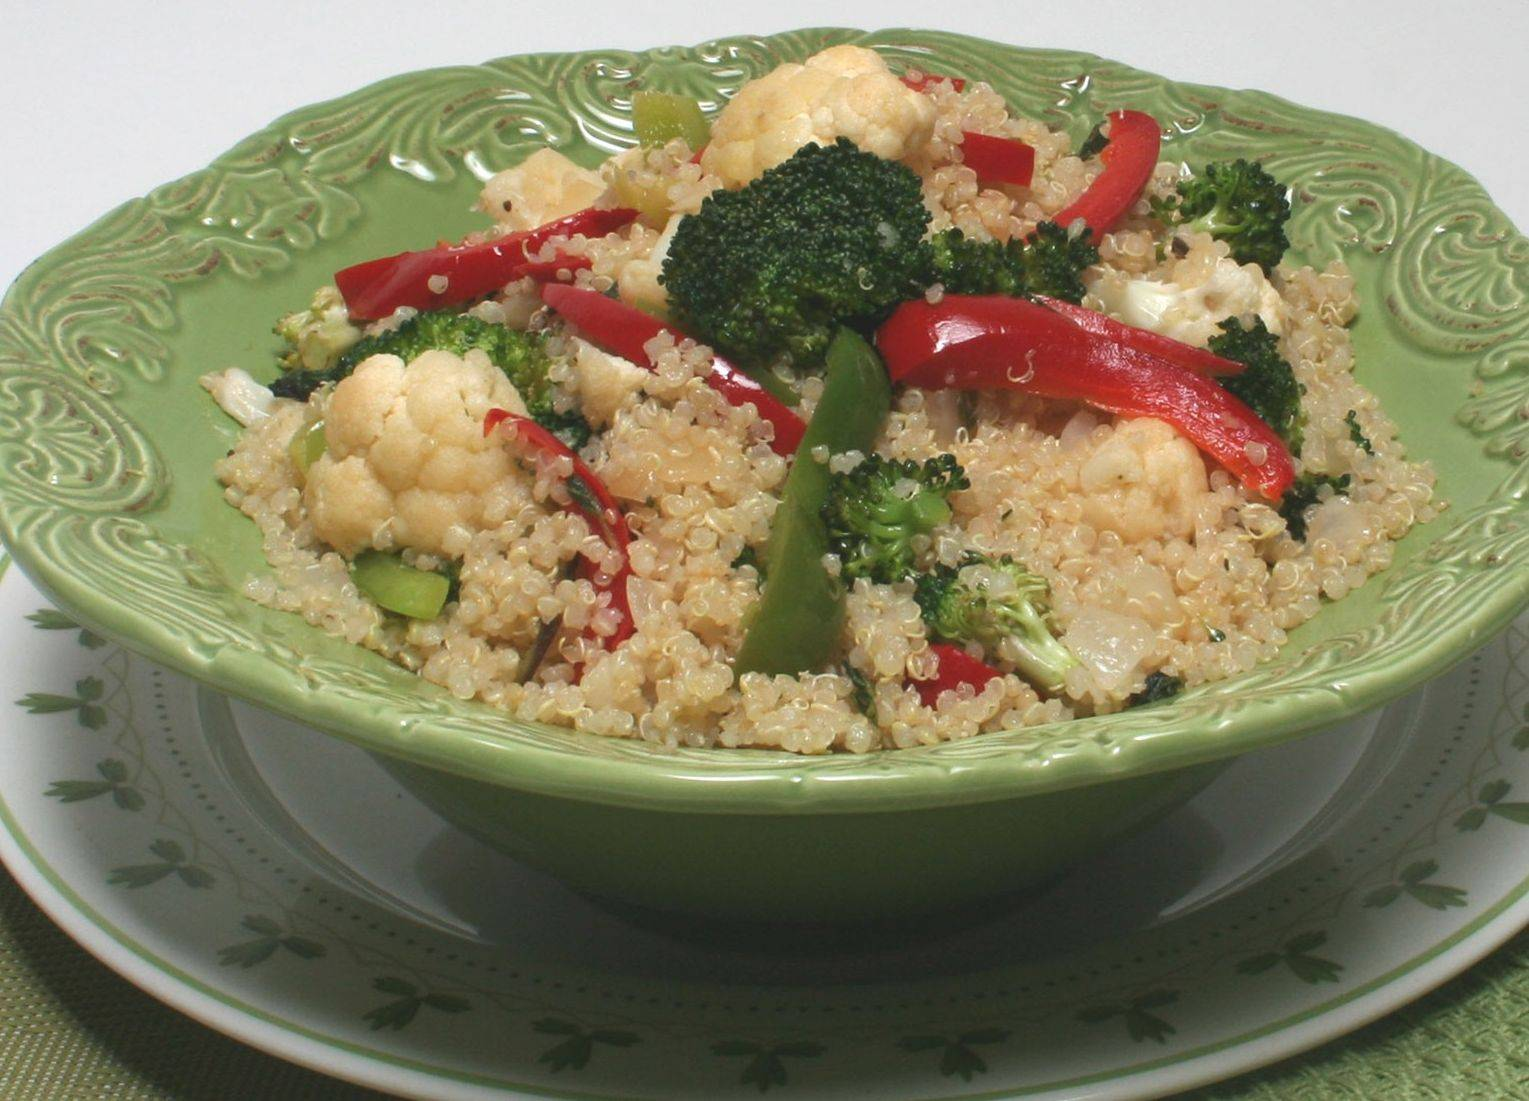 Cauliflower, broccoli and quinoa combine for a filling and nutritious dish.